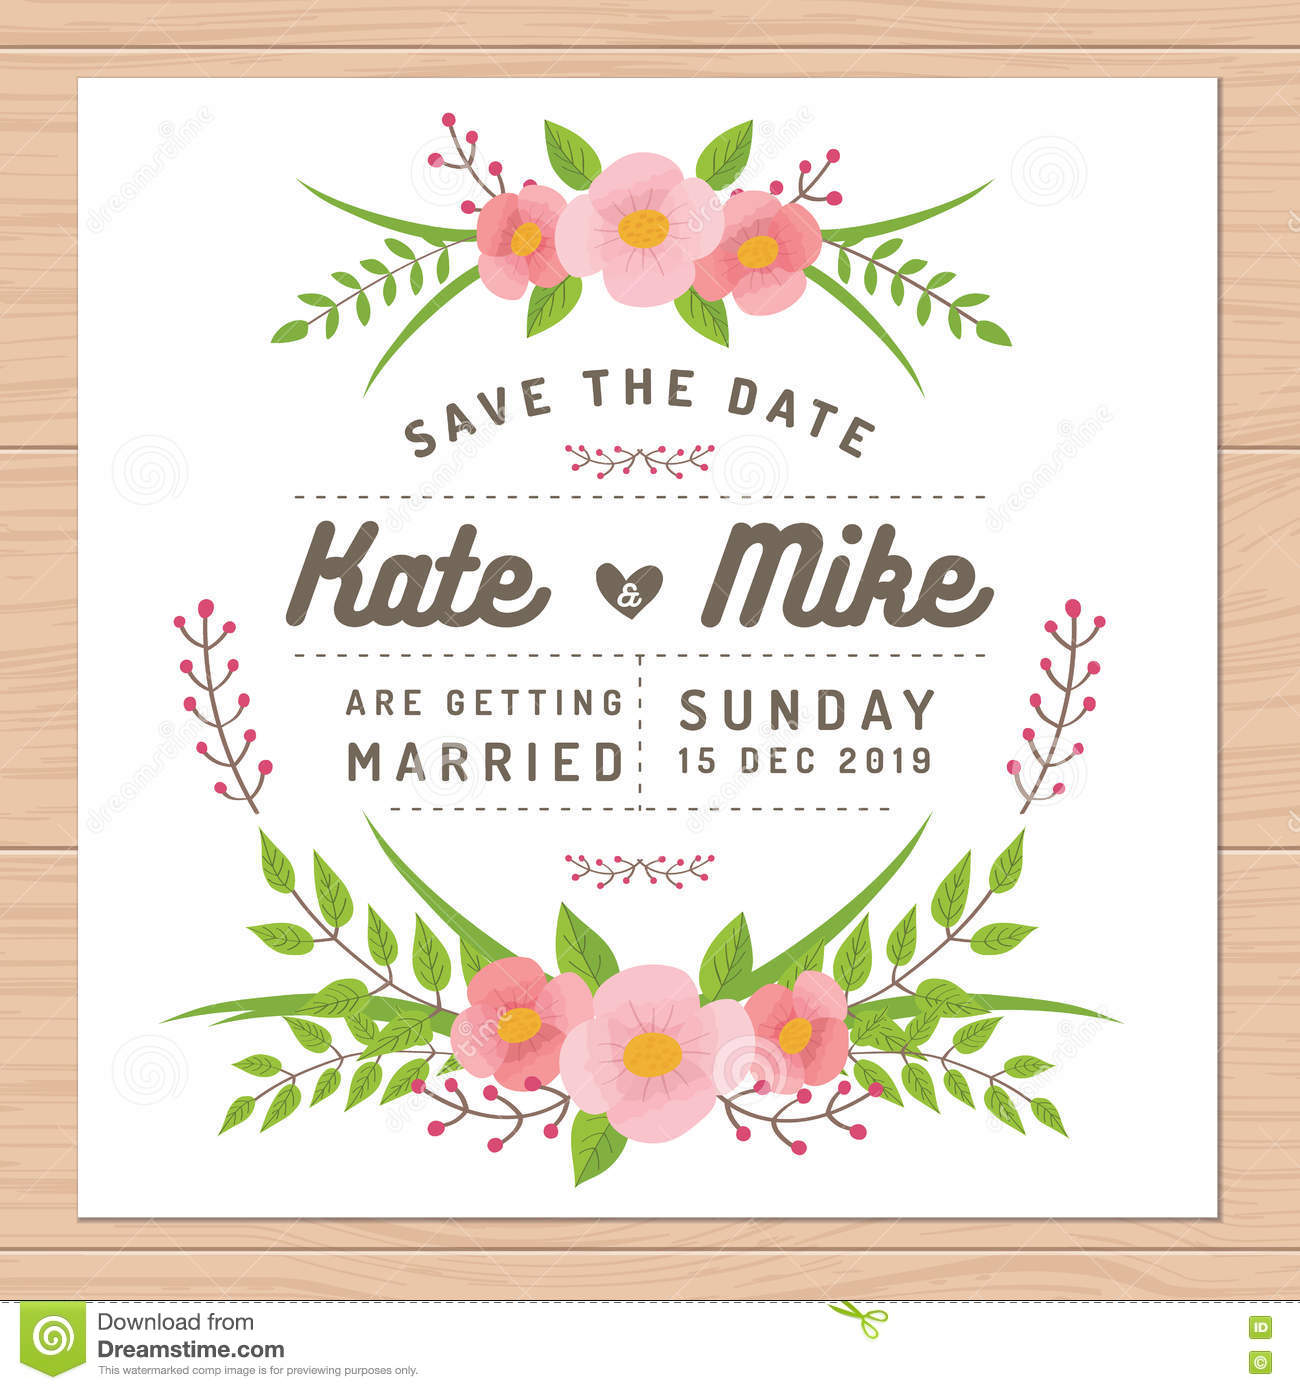 save the date wedding invitation card with flower templates flower